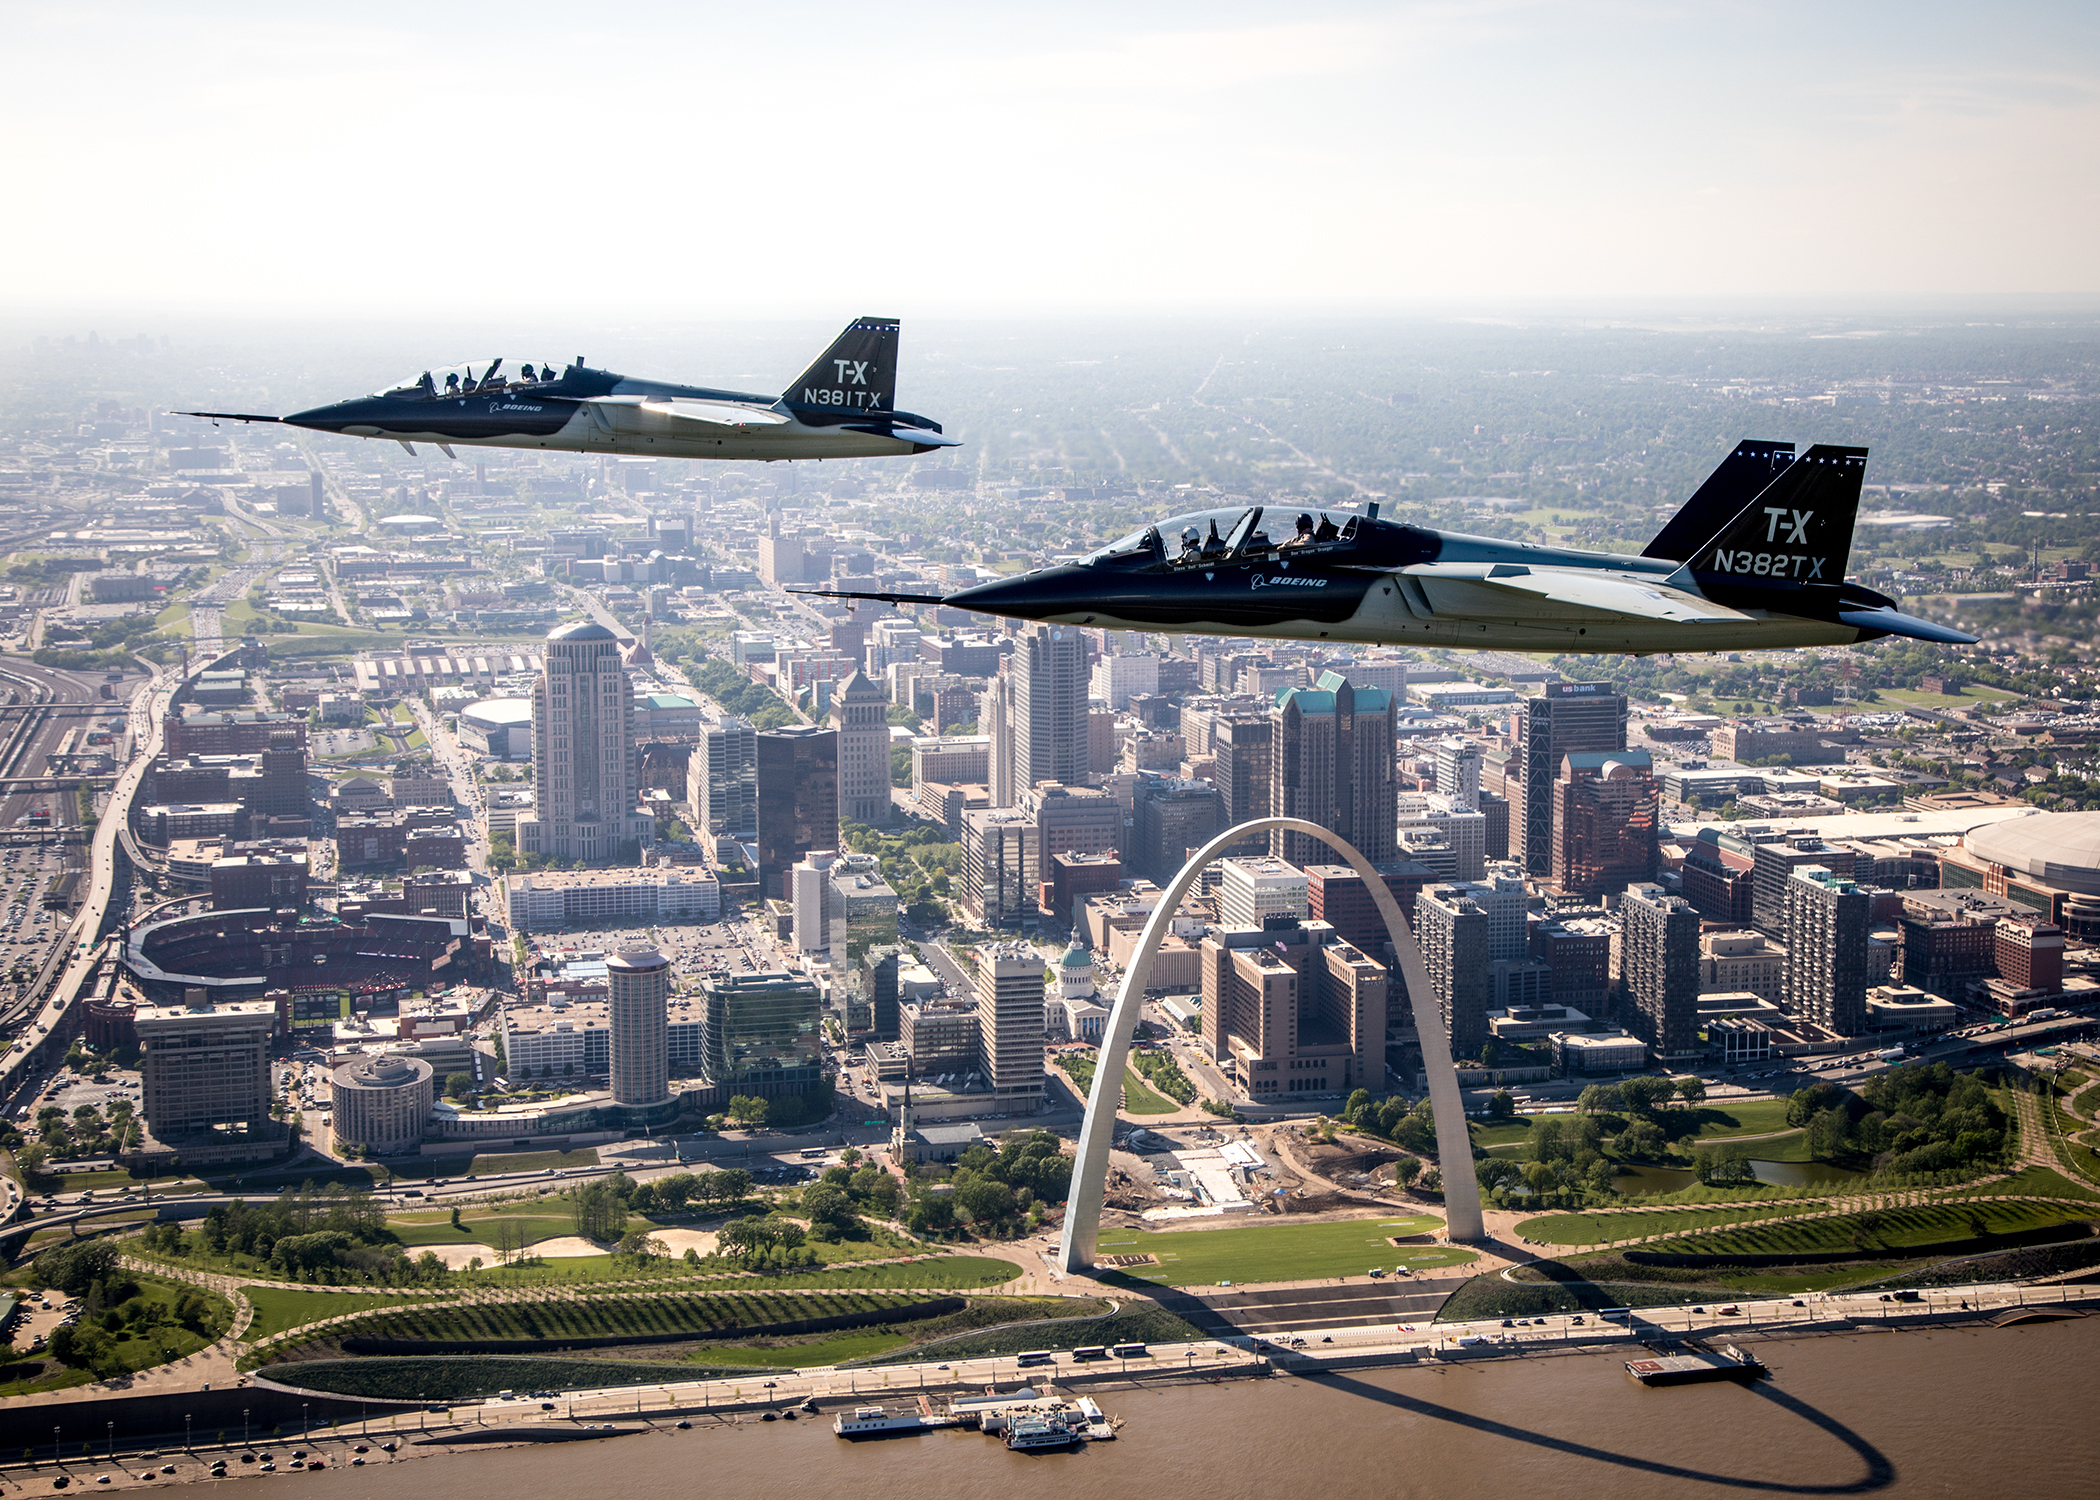 If CR persists, Air Force could announce T-X winner ahead of contract award